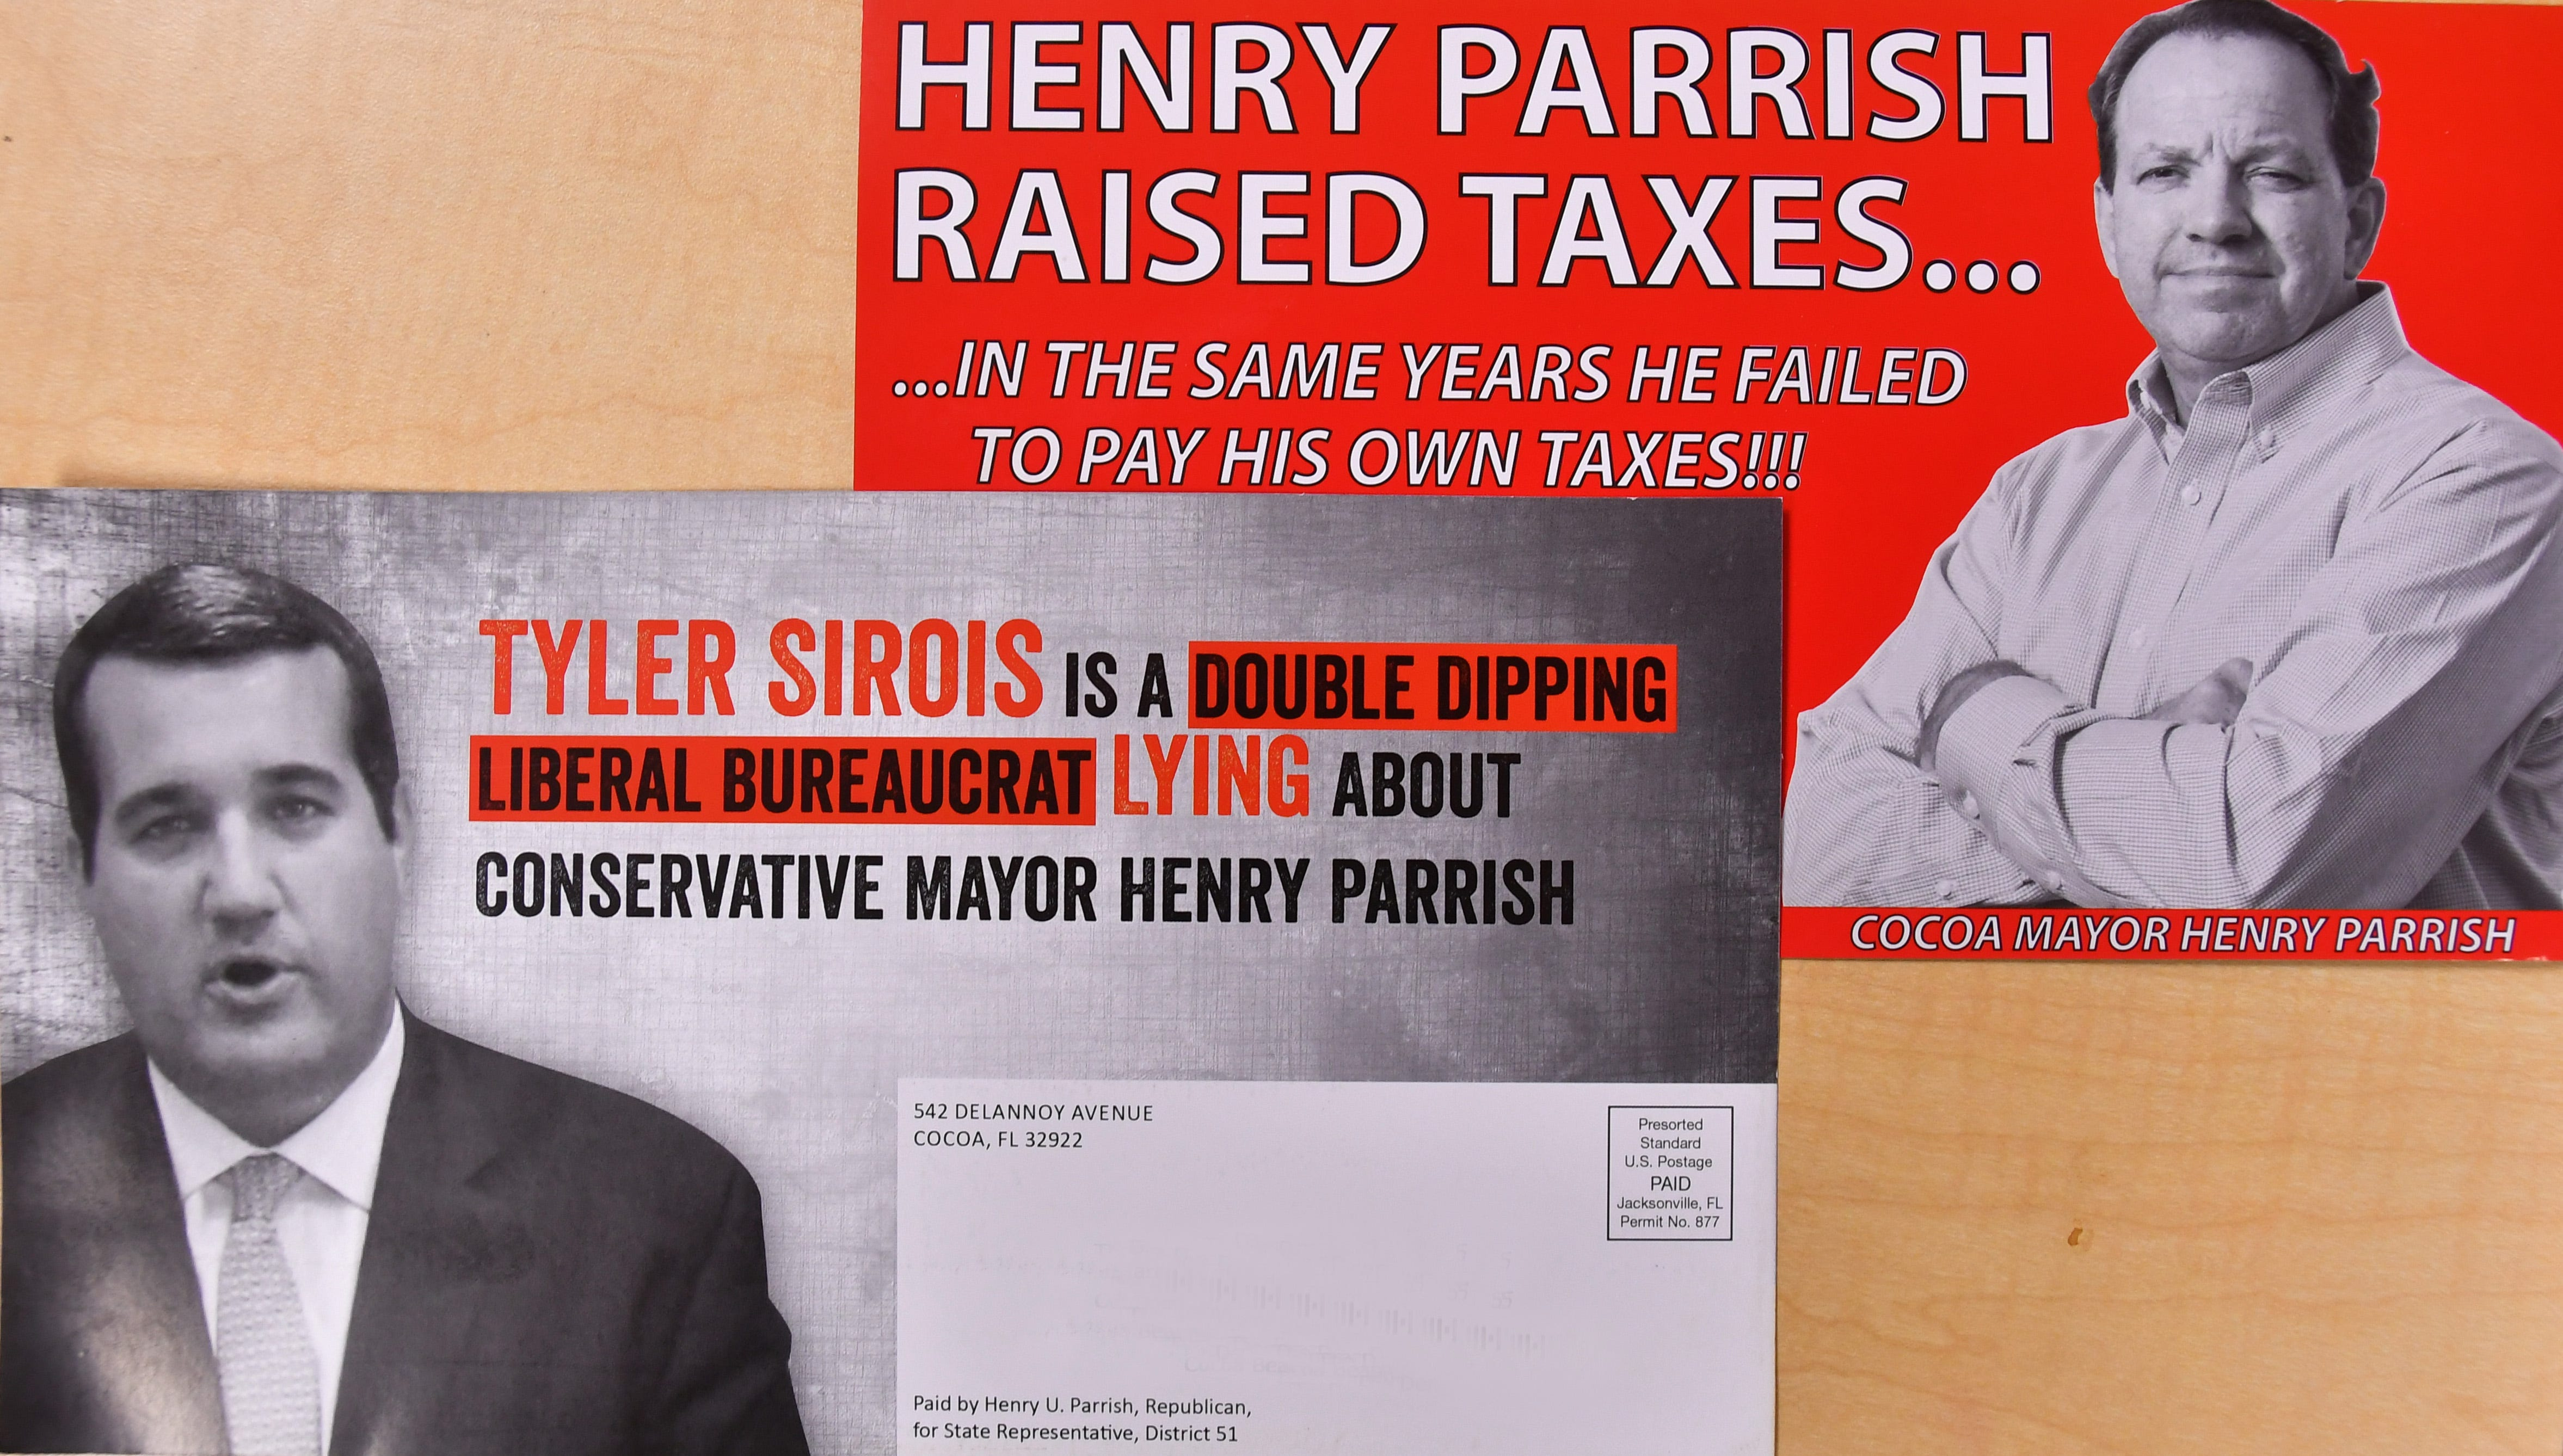 7f027be7-1a37-4eaa-9594-7985577c4d76-Negative_Mailer_ Candidate Parrish owes $18,550 in back property taxes, which becomes issue in GOP primary